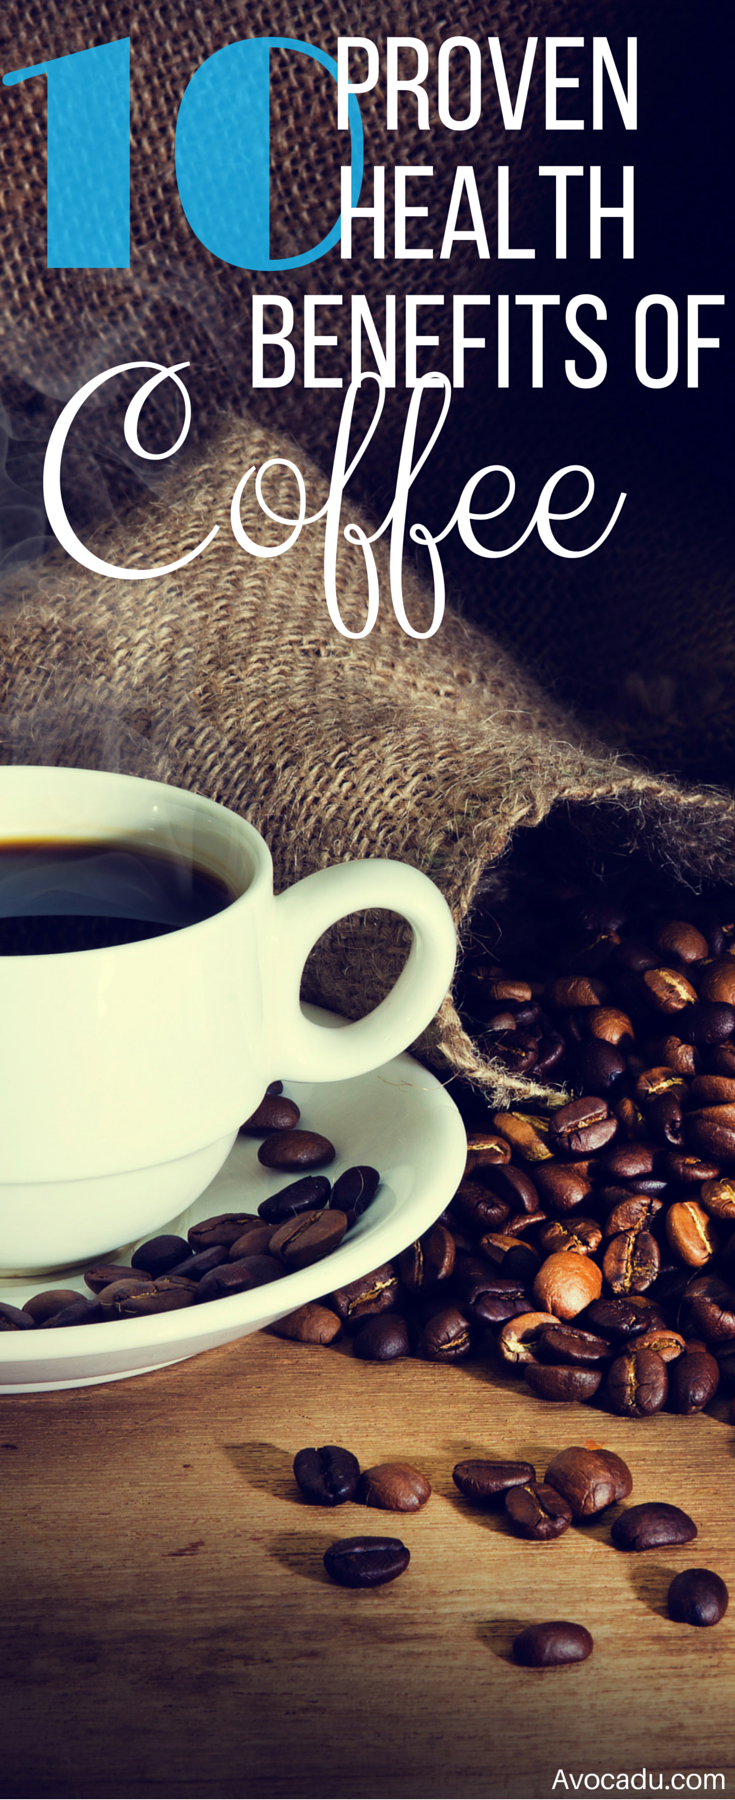 10 Proven Health Benefits of Coffee Coffee health